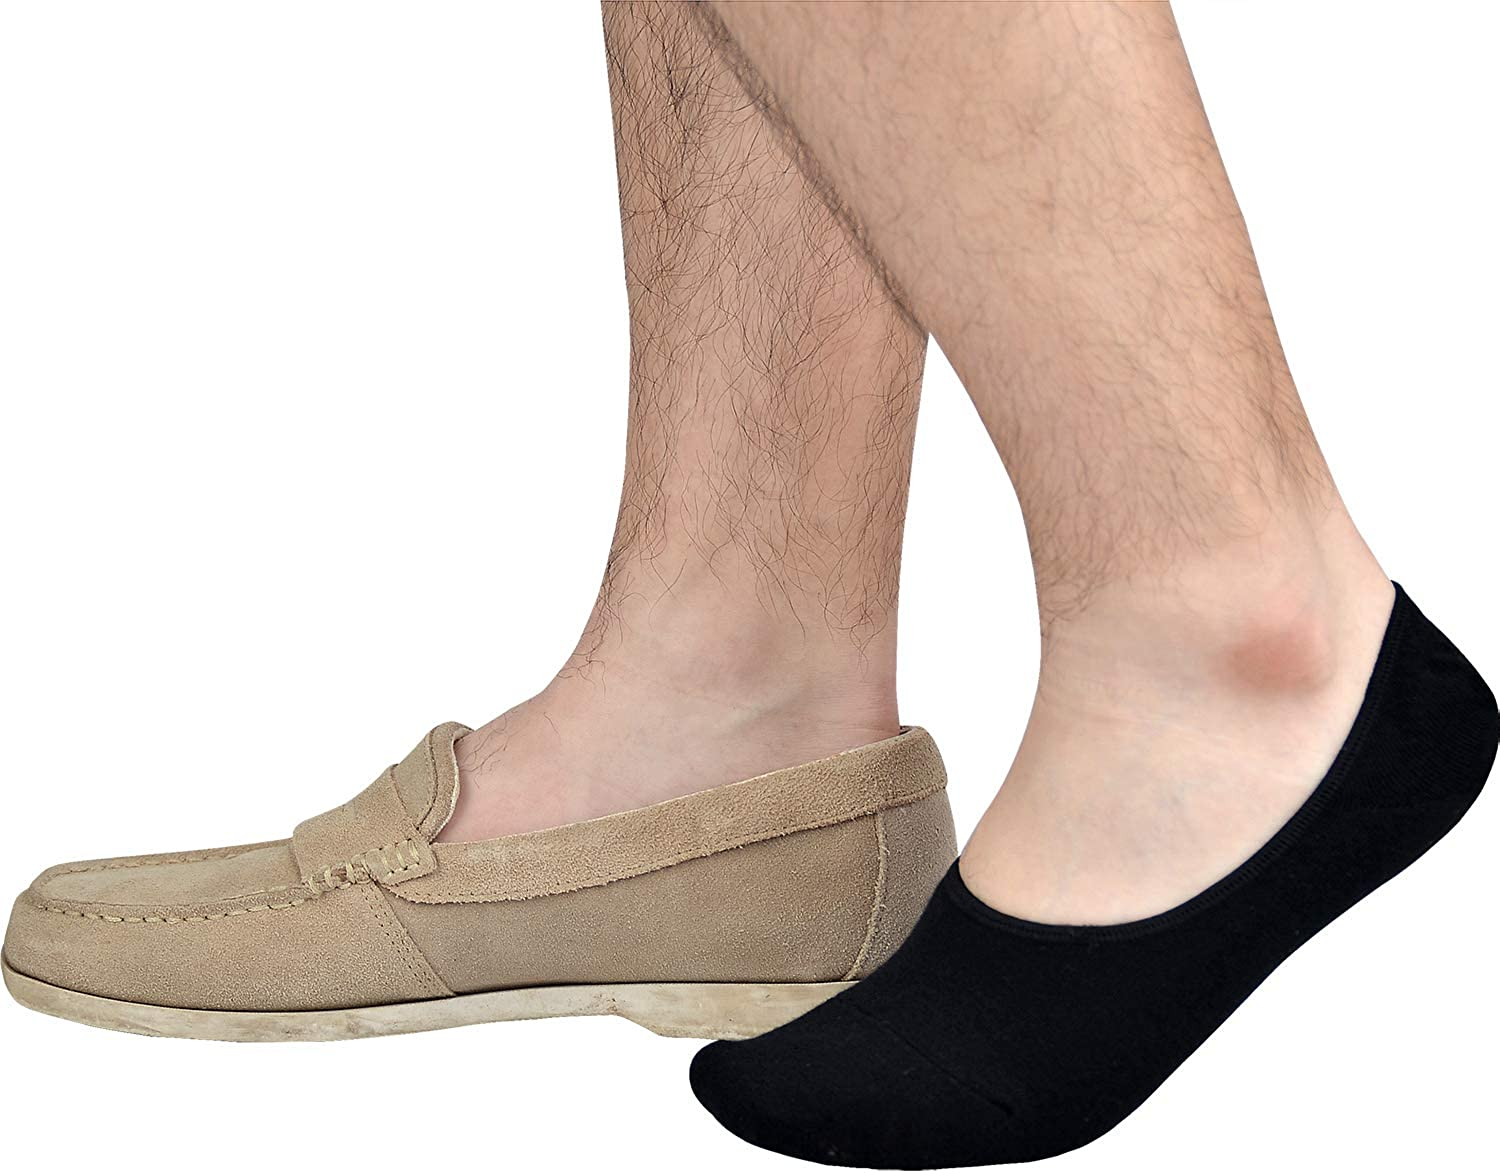 Jormatt Mens Truly No Show Socks With Non Slip Grips,Women Cotton Low Cut Socks for Loafer Sneakers Boat Shoes